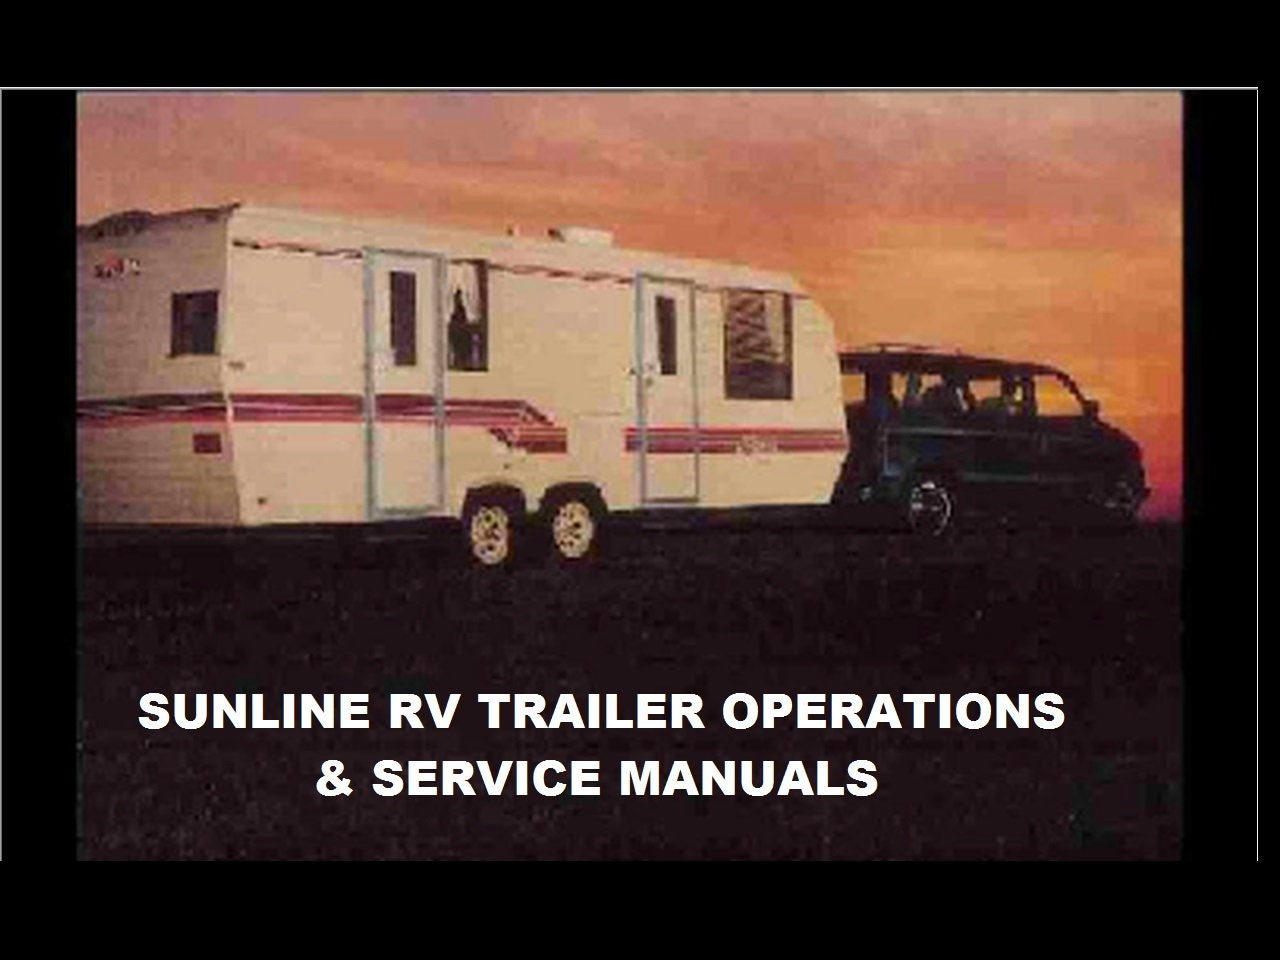 Sunline Camper Wiring Diagram Library 24j Rv Trailer Operations Manuals 430pgs With 5th Wheel Etsy